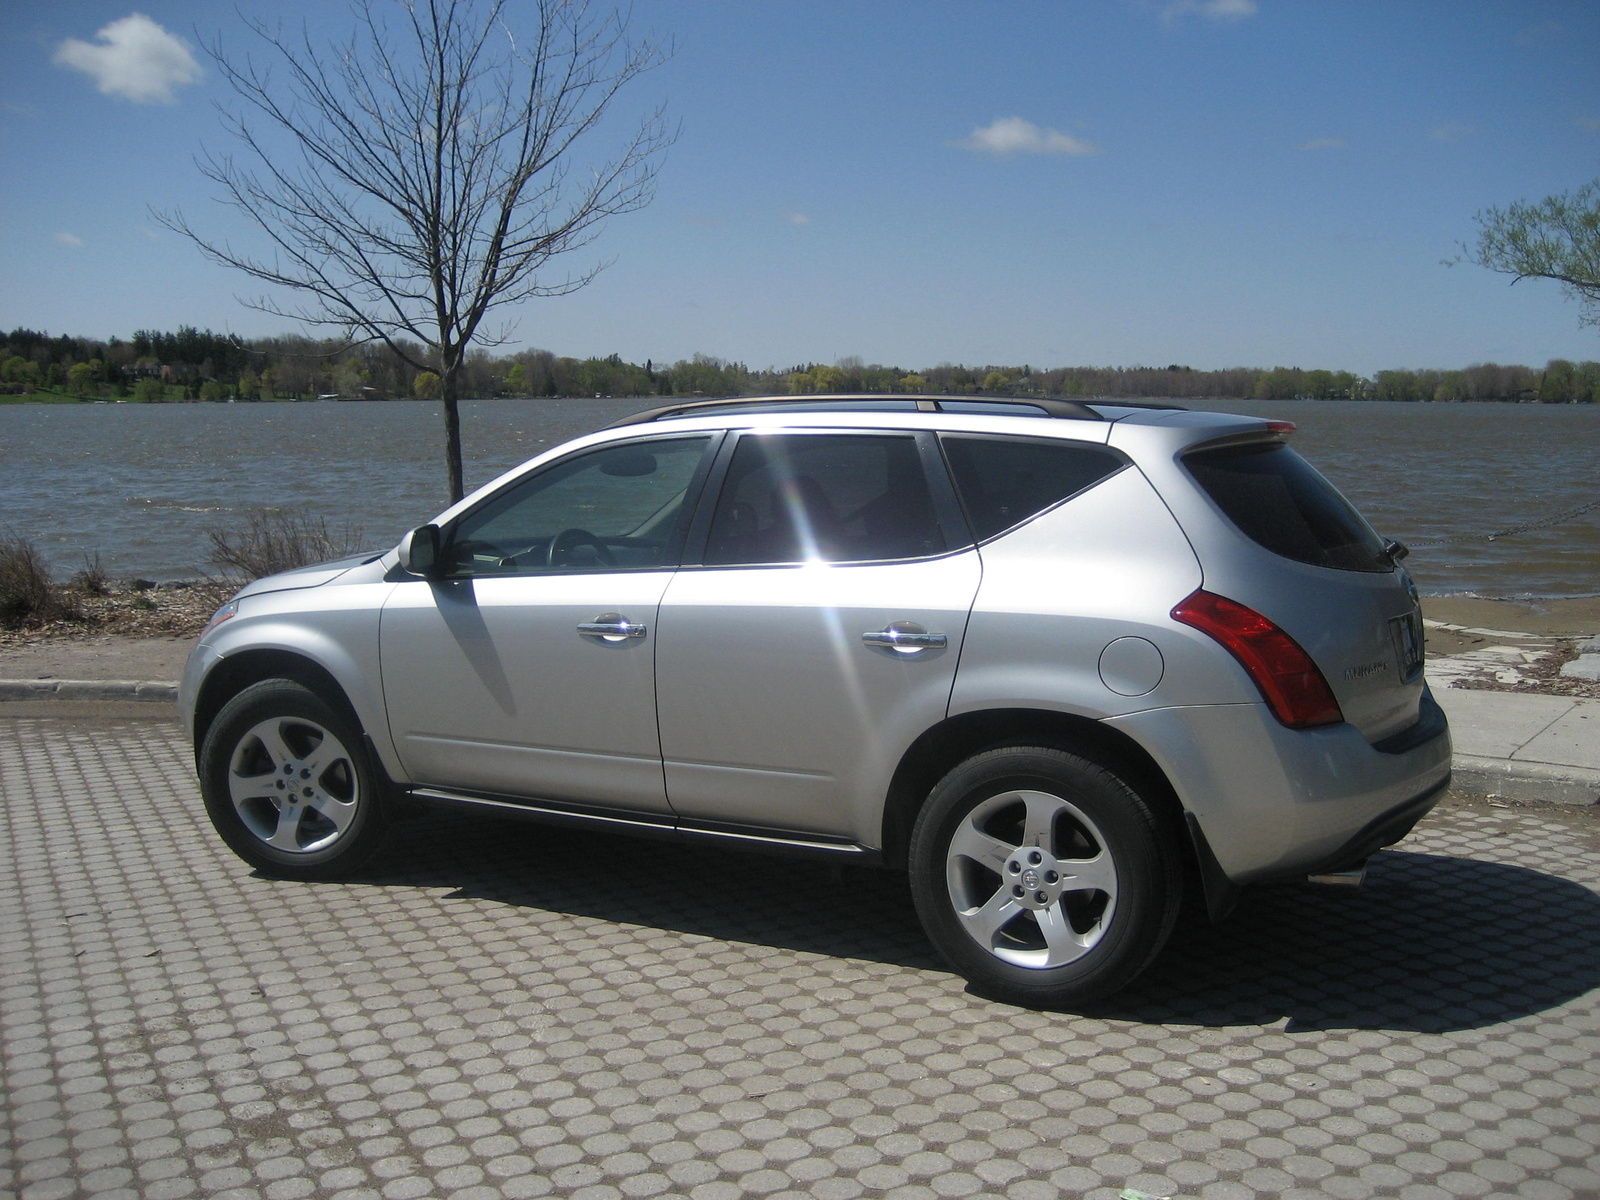 Nissan Albany Ga >> Cars For Sale 2003 Nissan Murano Awd In Melbourne Fl | Autos Post